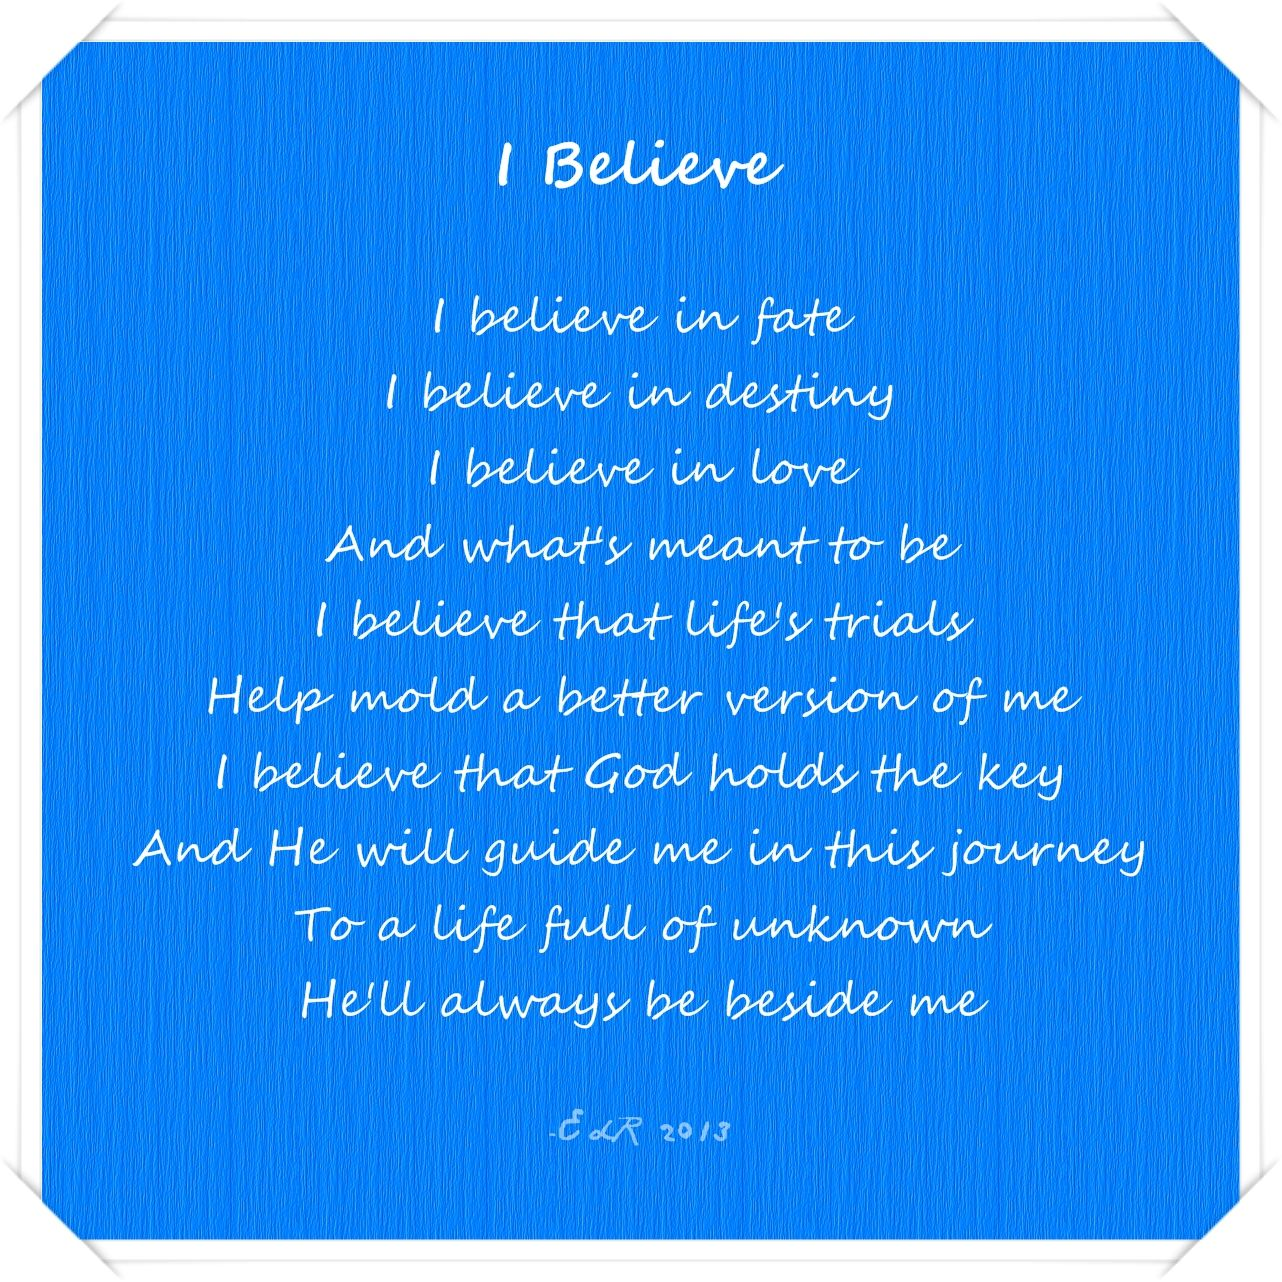 poems about life | POEM: I Believe | FAITH | Poems about